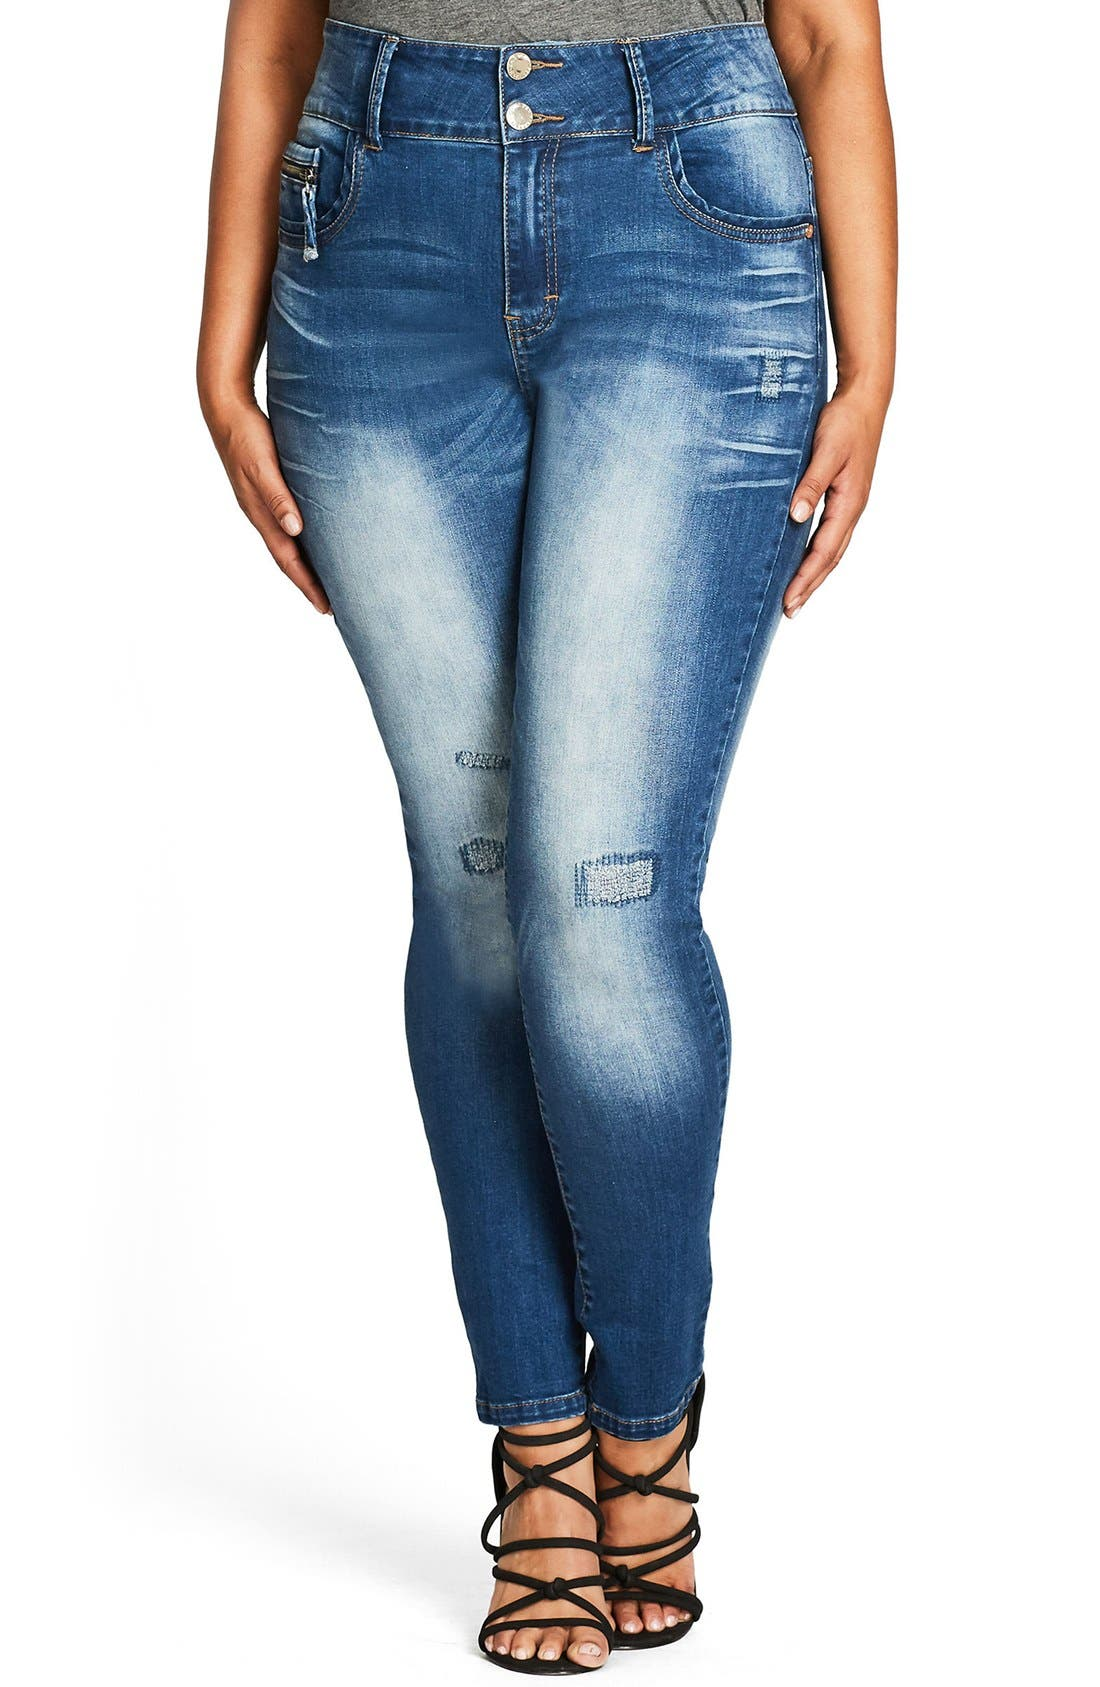 Alternate Image 1 Selected - City Chic Ocean Apple Stretch Skinny Jeans (Plus Size)